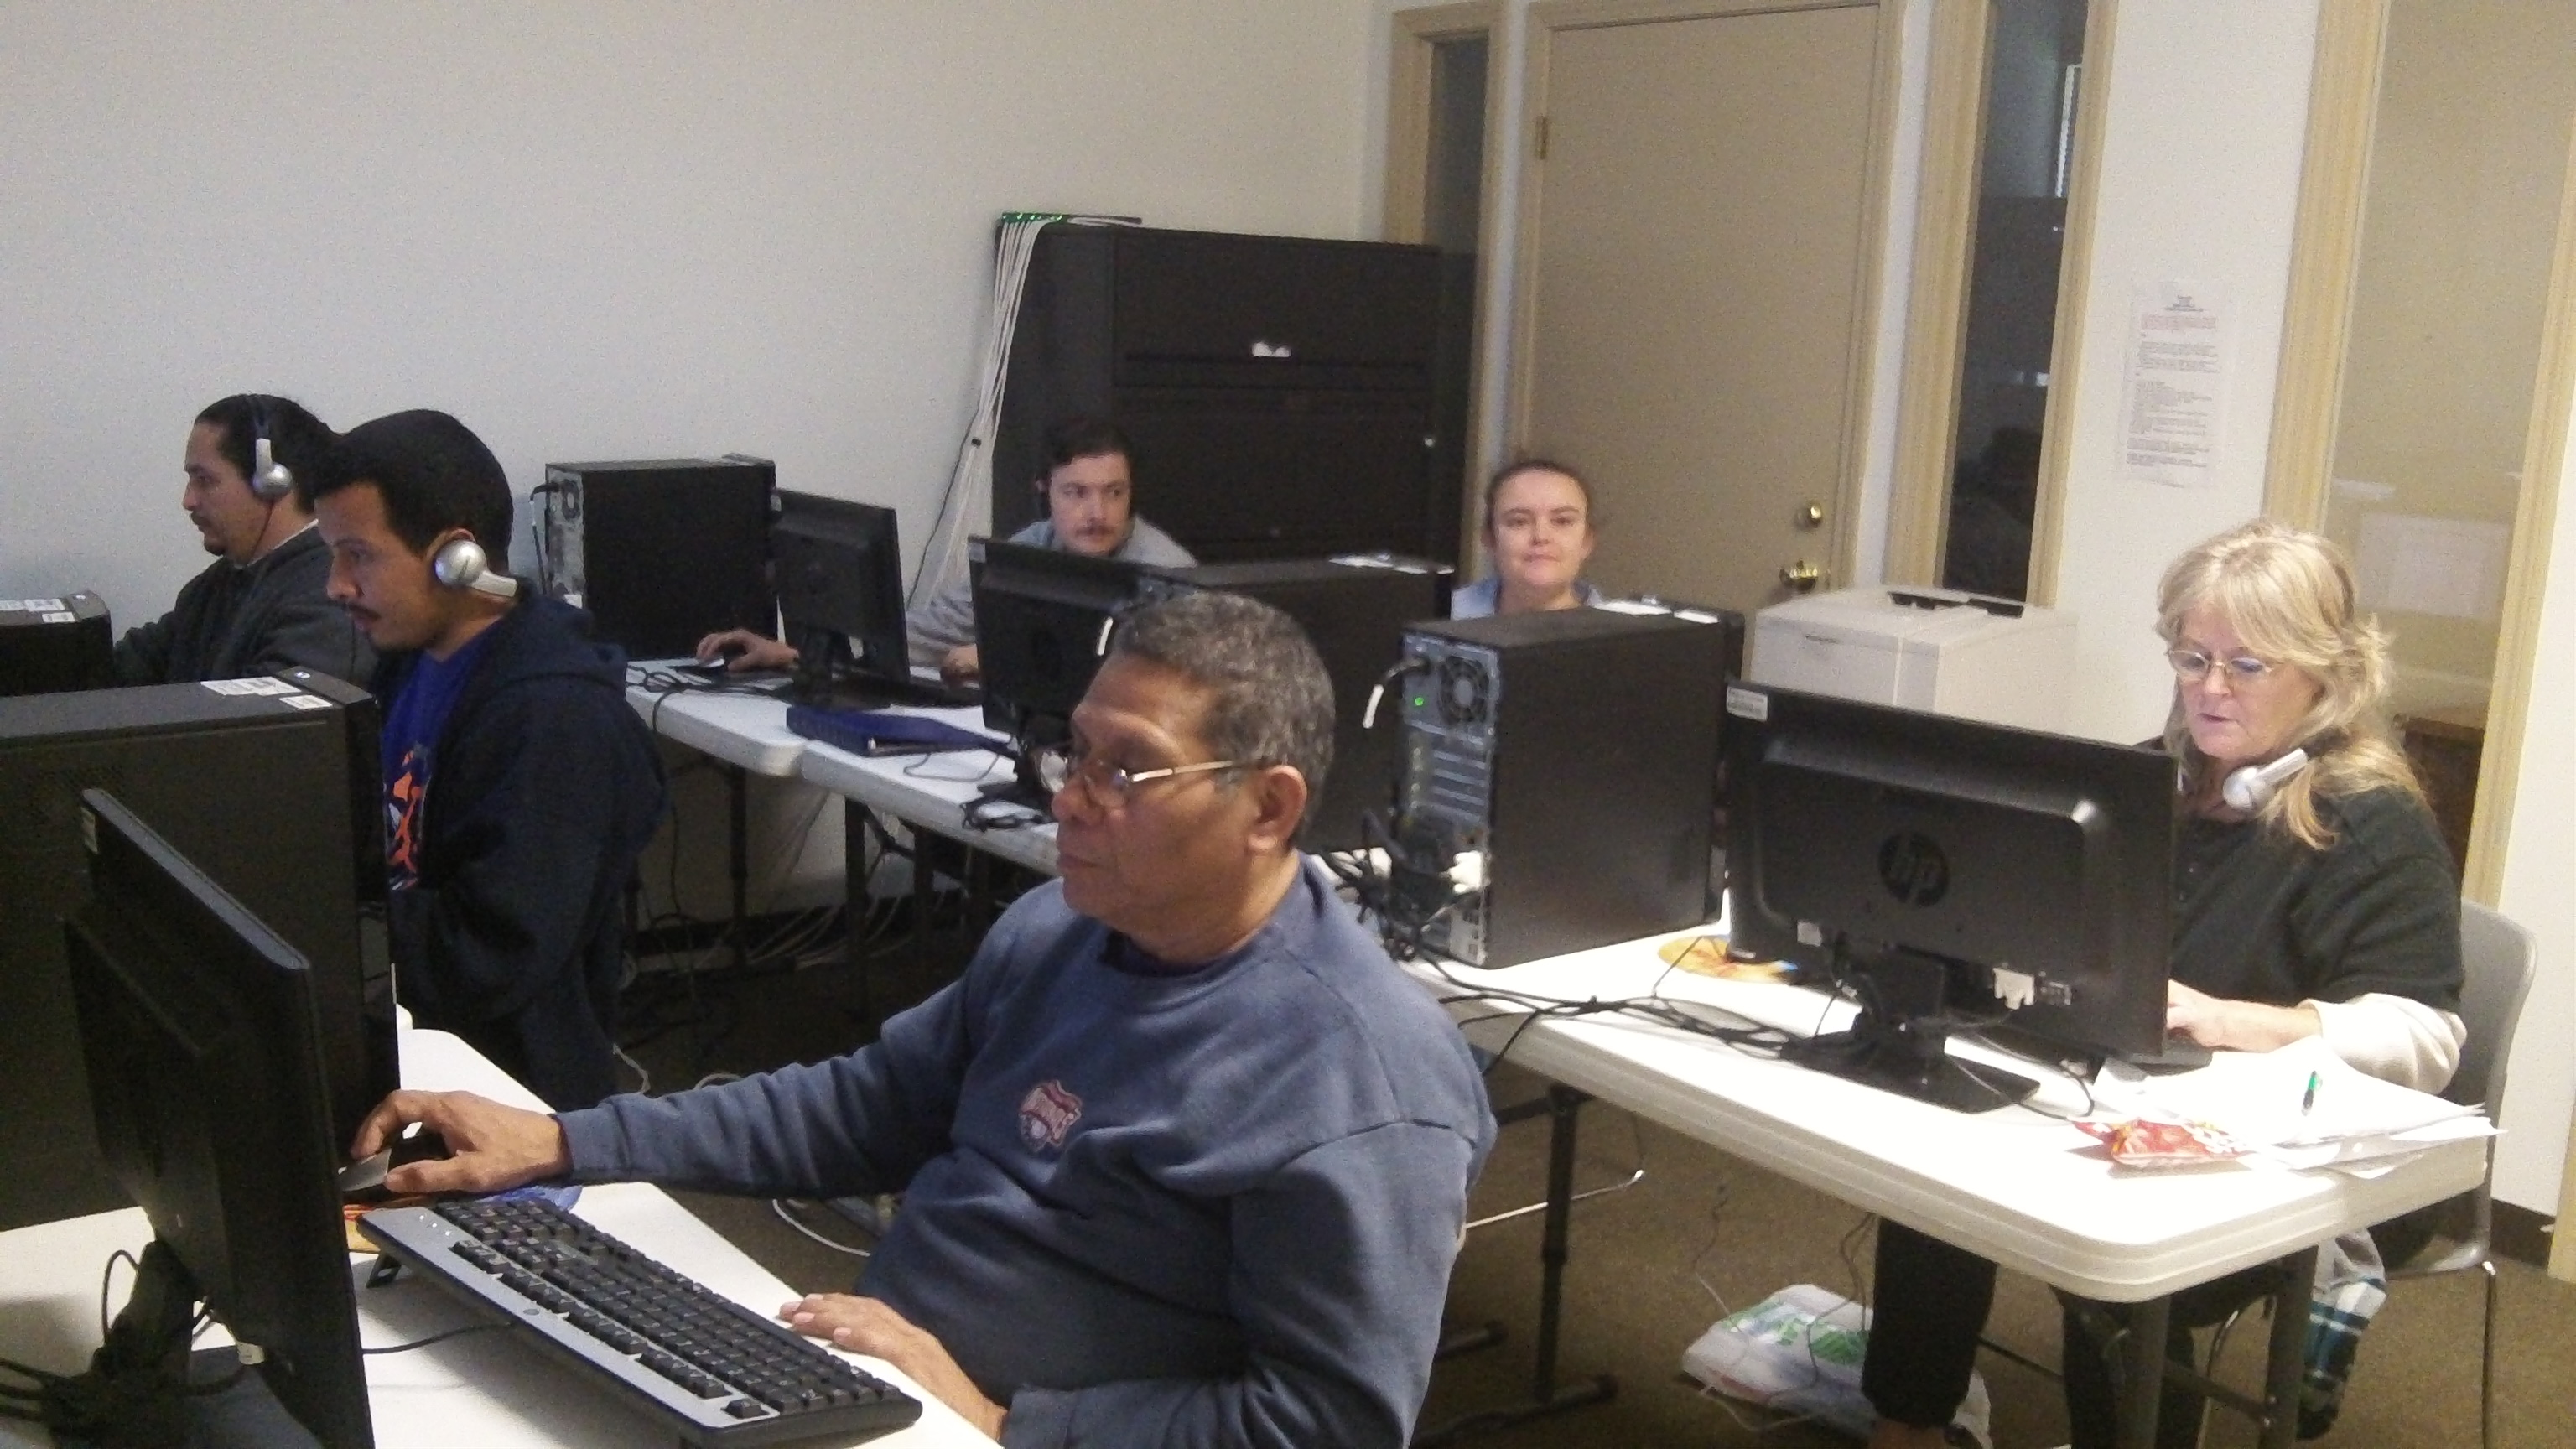 People using our computer lab.